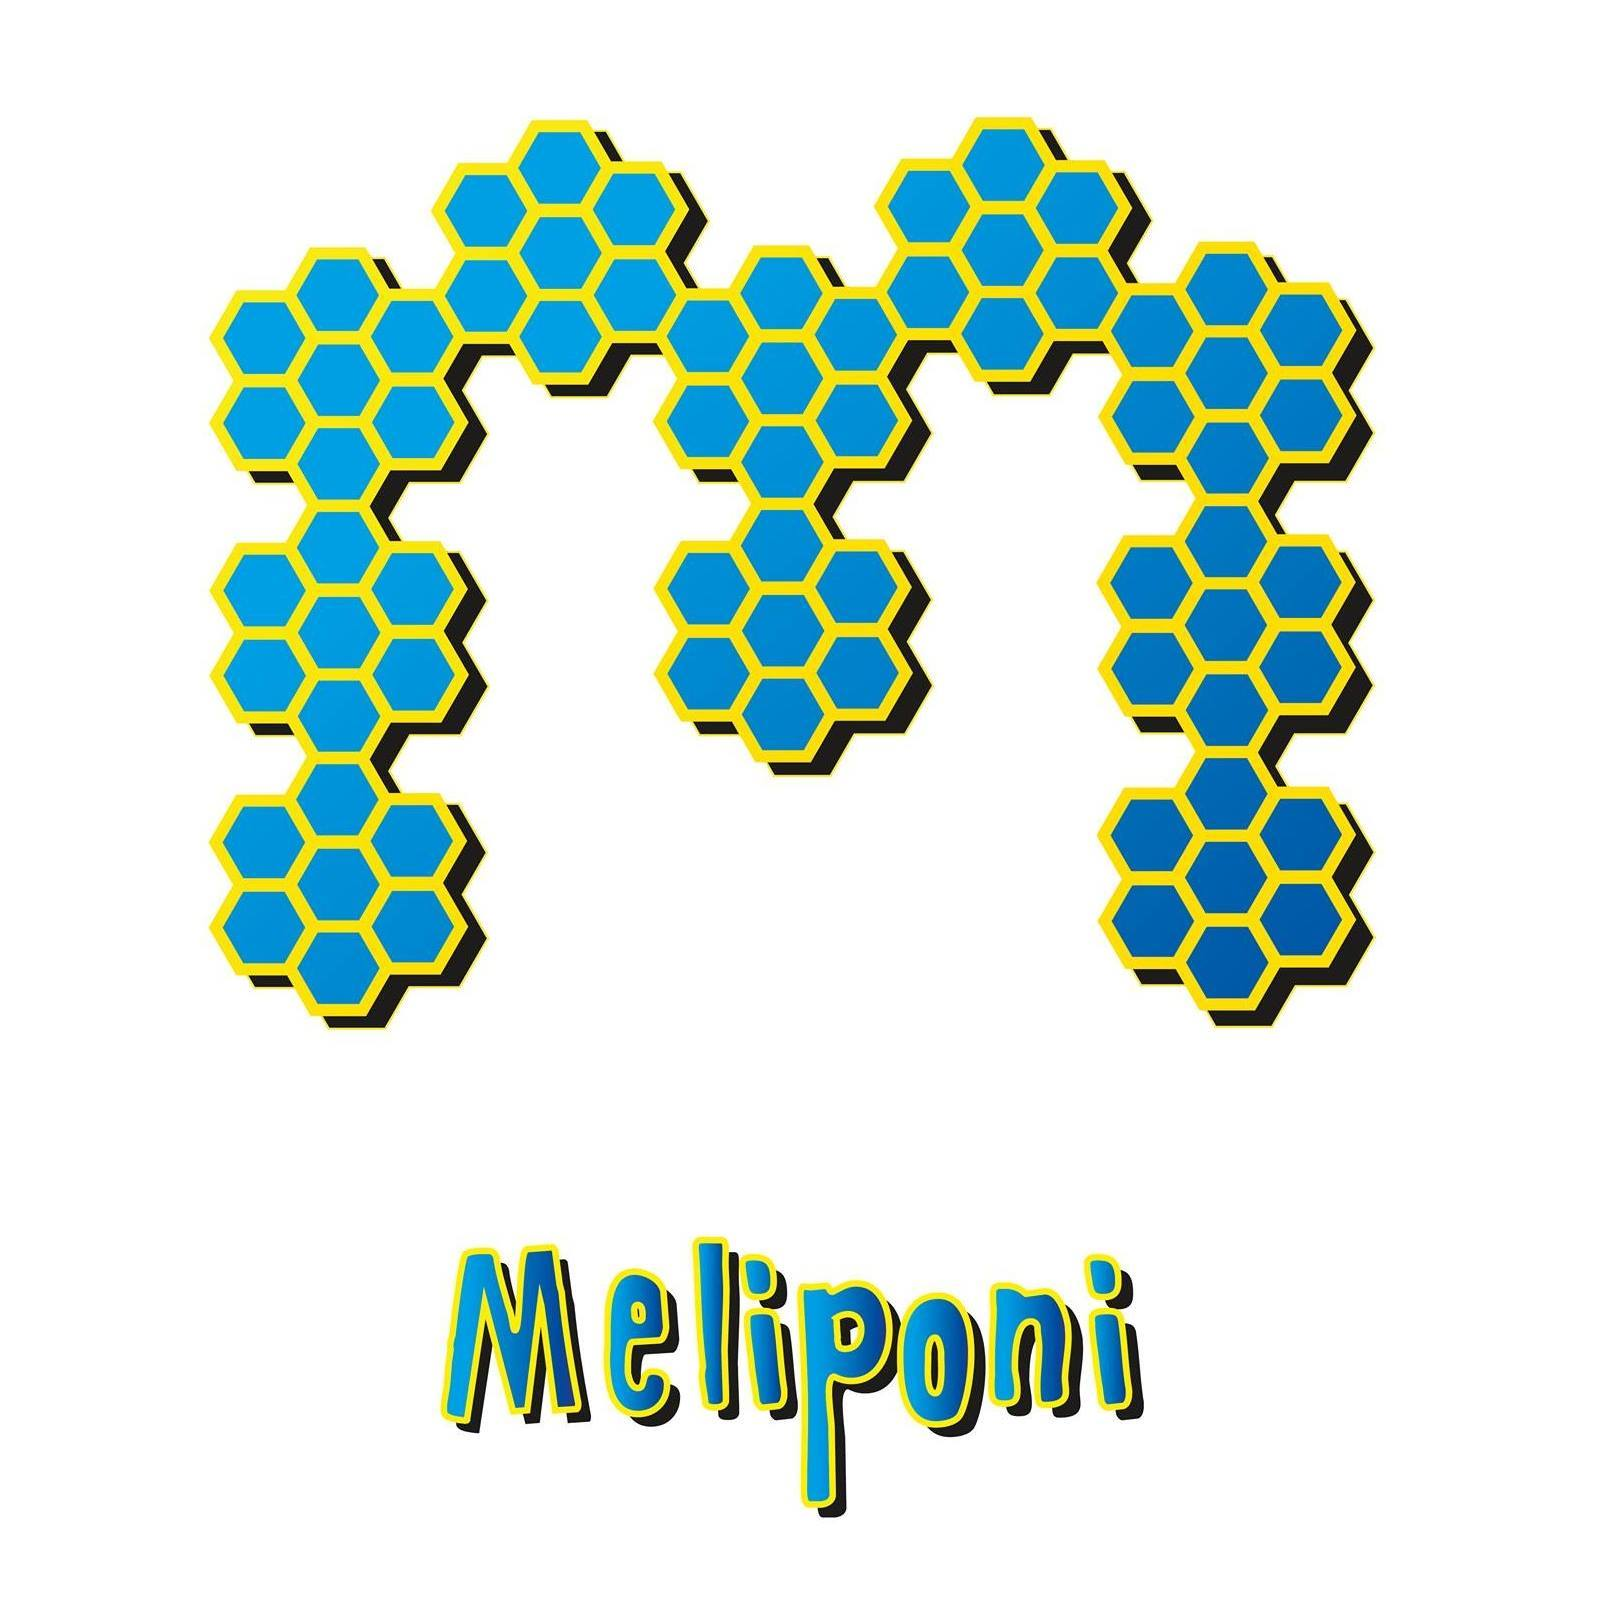 Association - Meliponi